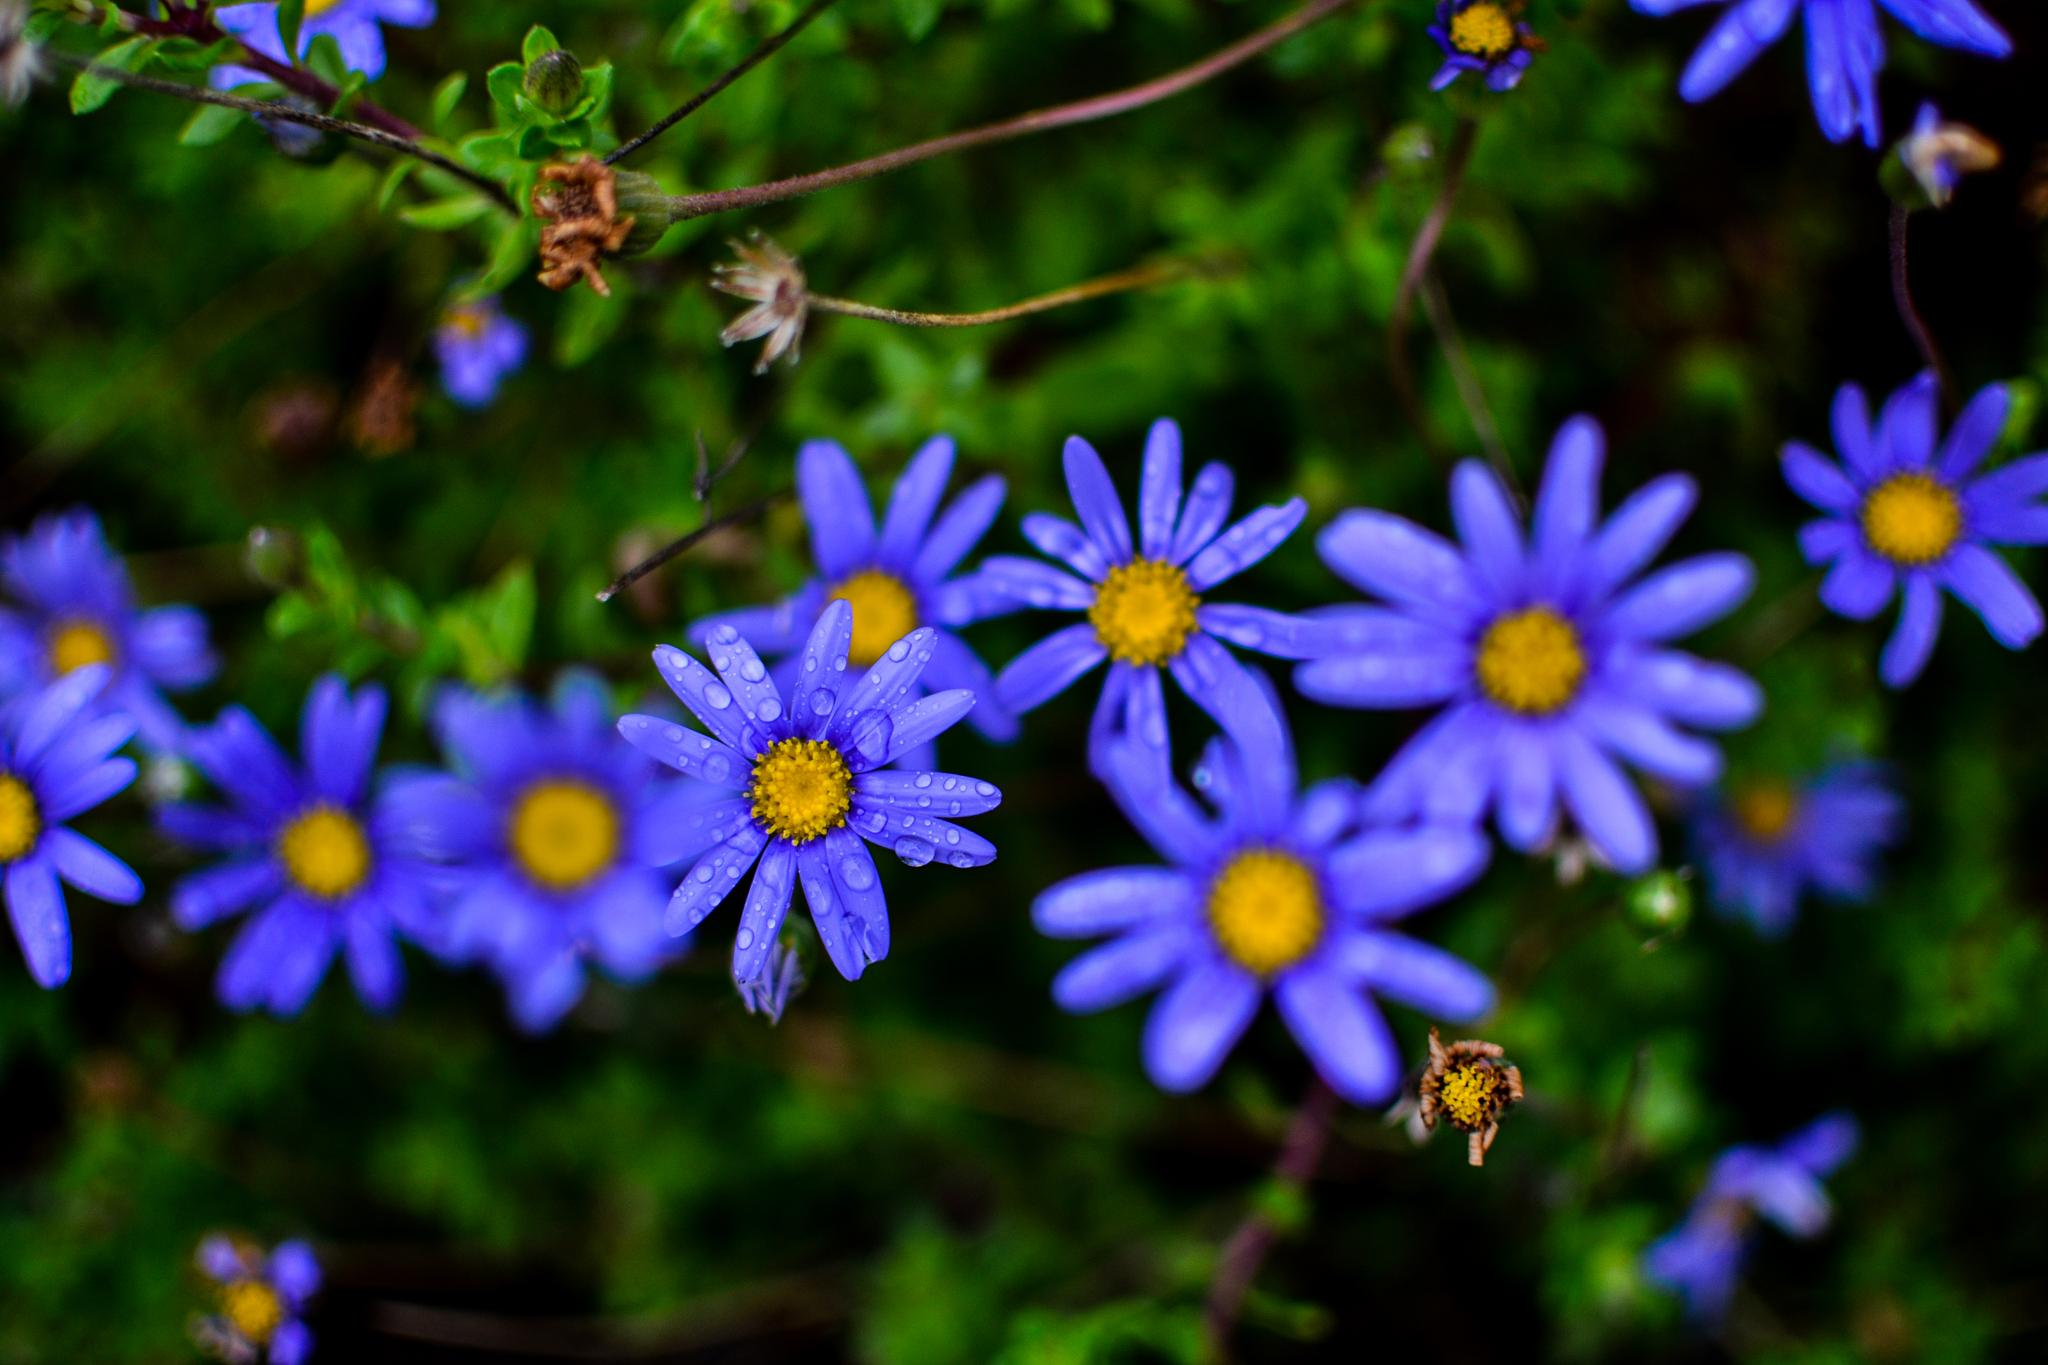 Blue Daisy by MikeB28